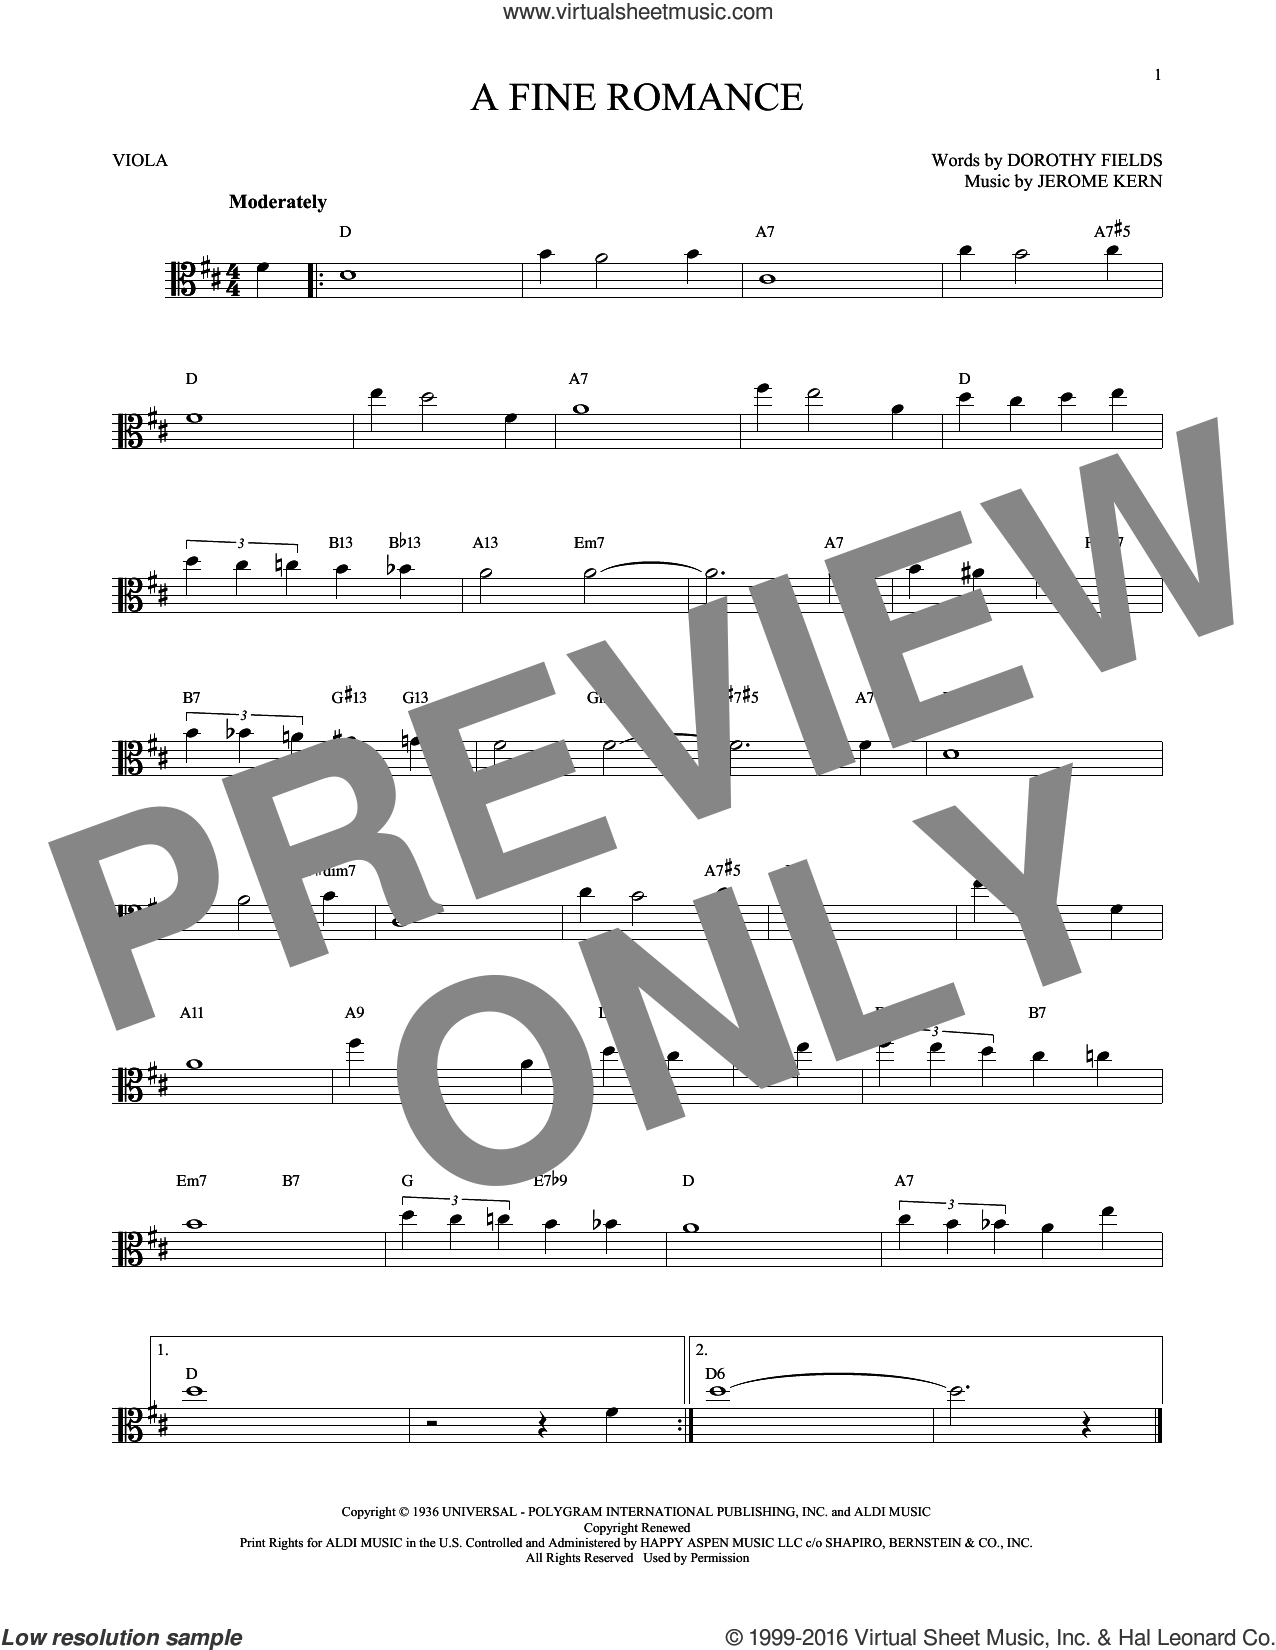 A Fine Romance sheet music for viola solo by Jerome Kern and Dorothy Fields, intermediate skill level